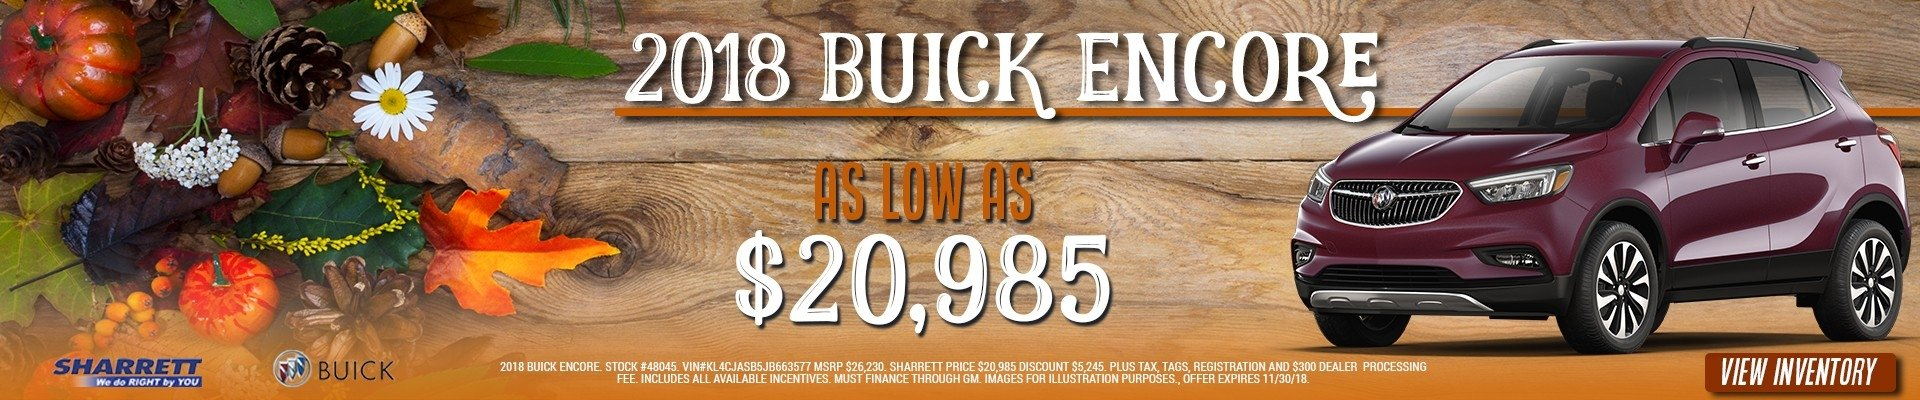 Get a new 2018 Buick Encore for as low as $20,985 at Sharrett Buick GMC